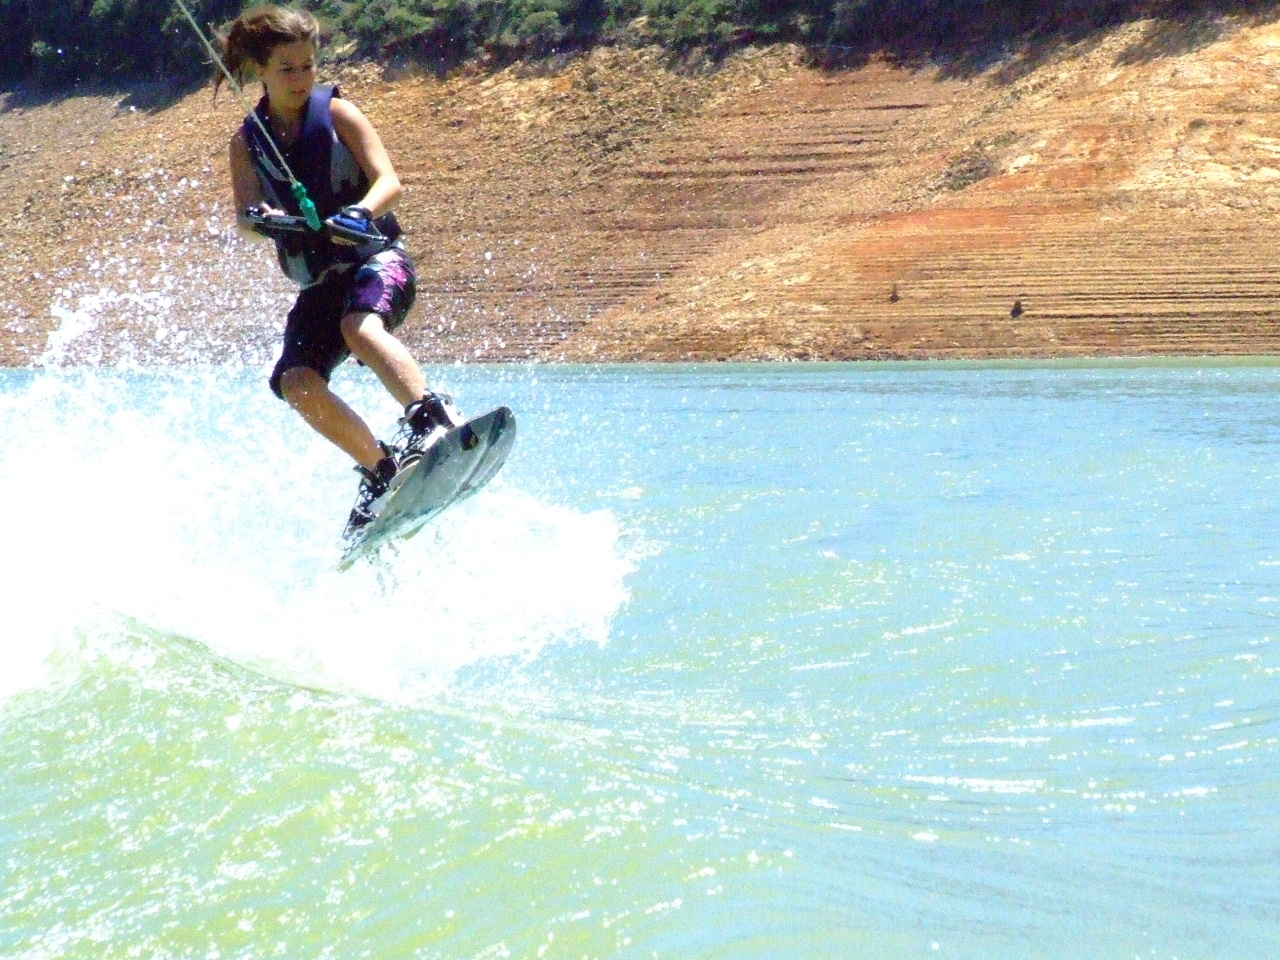 Wakeboarding is FUN!